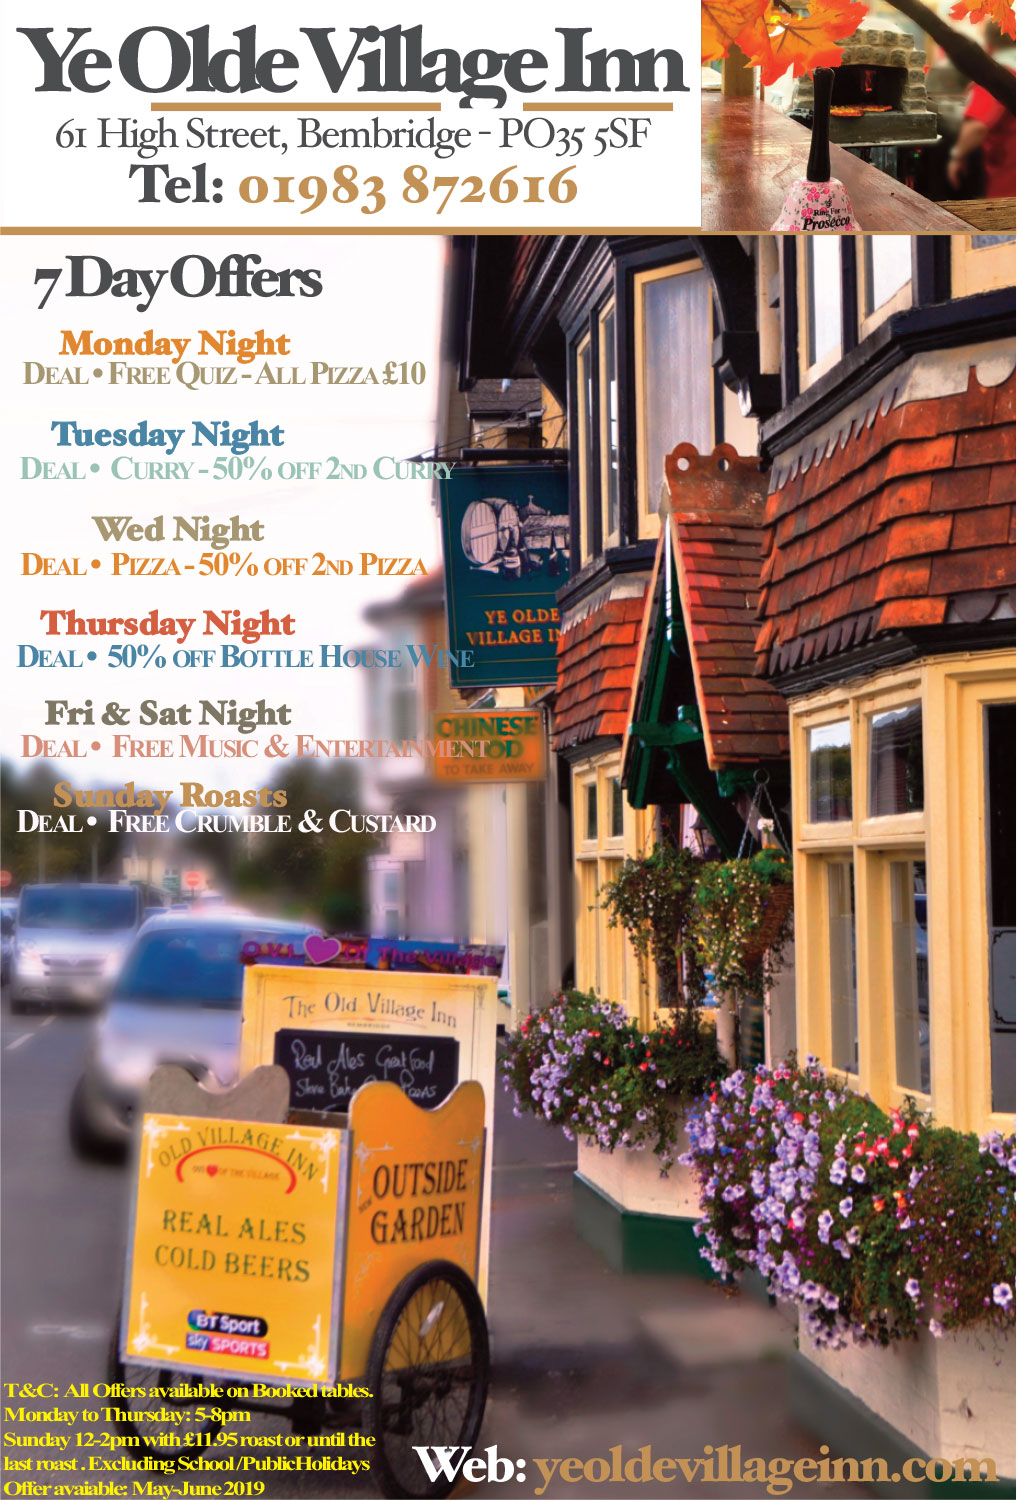 Ye Olde Village Inn - 7 Day Offers - February 2020